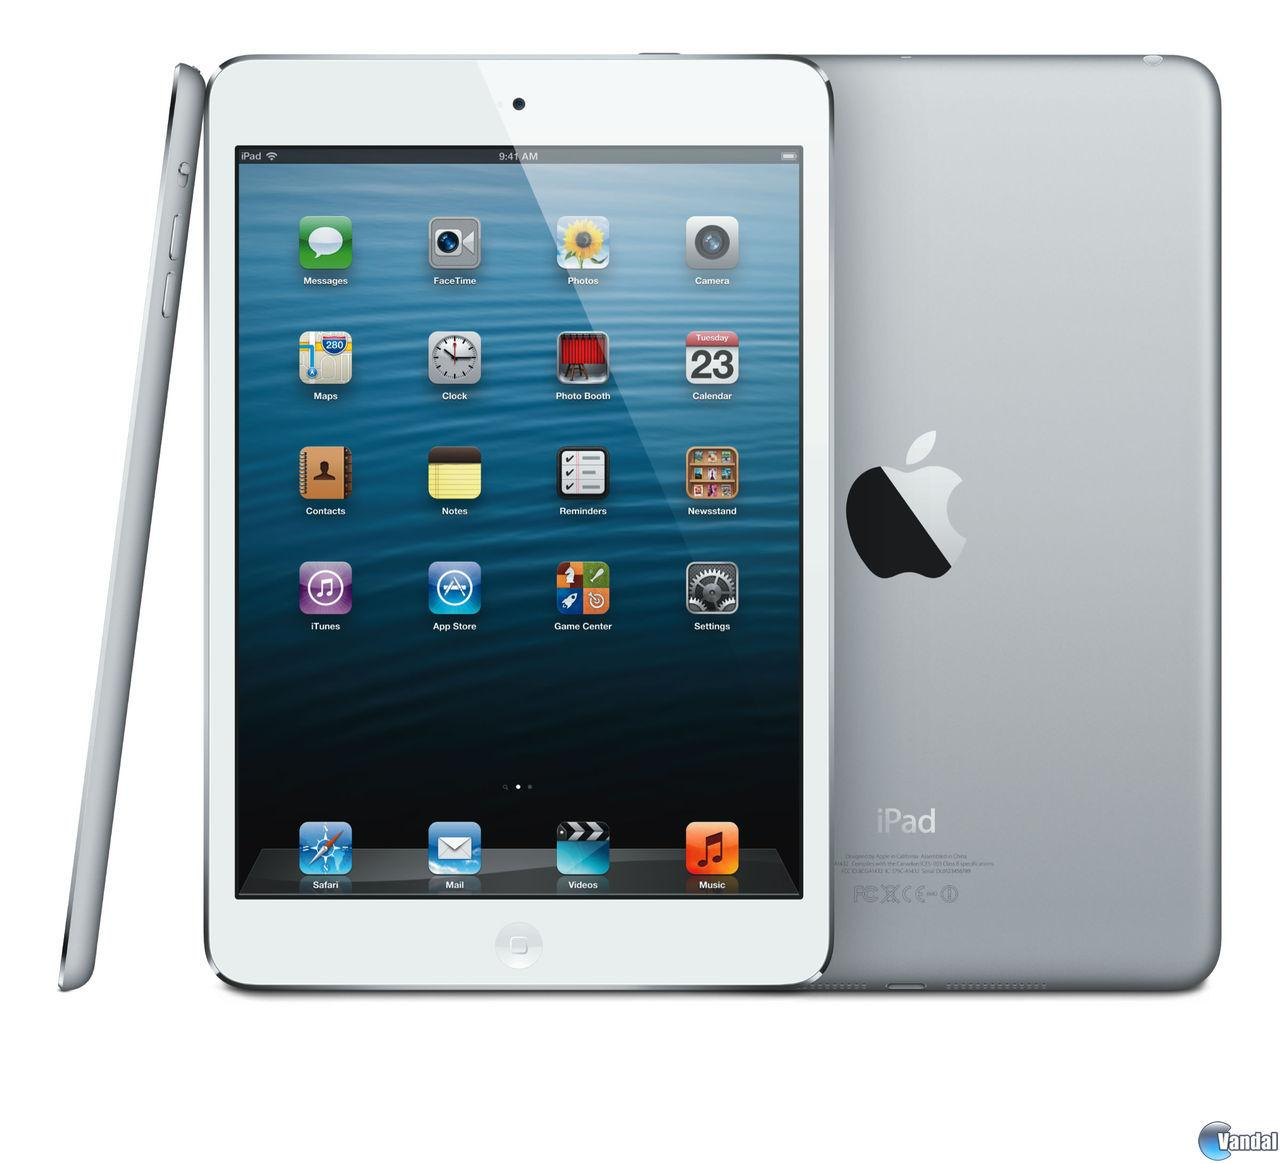 Anunciada la cuarta generacin de iPad y el rumoreado iPad Mini